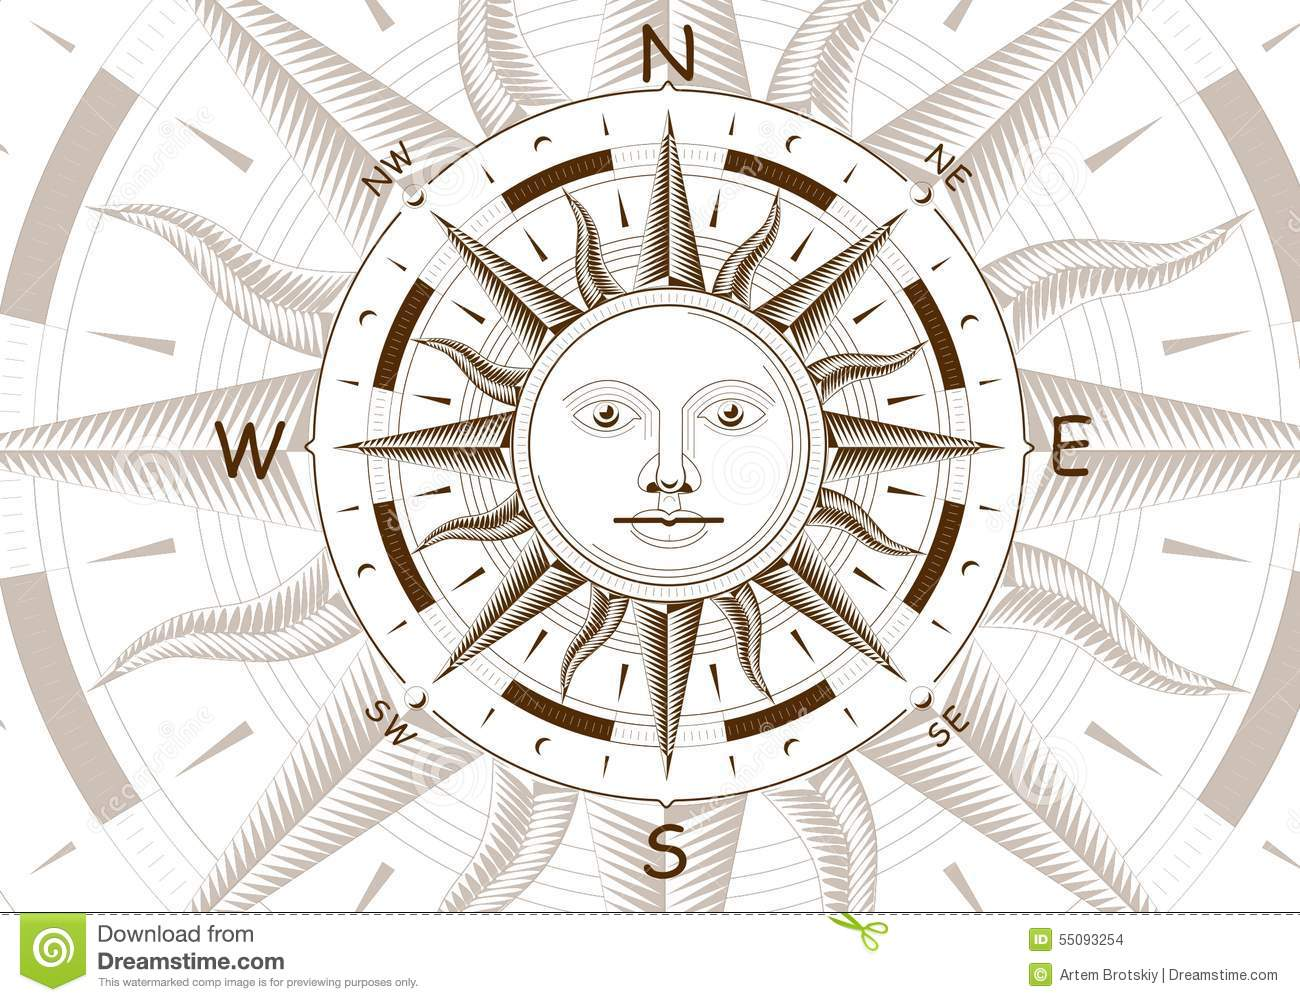 Wind Rose Compass Vector Stock Vector - Image: 55093254